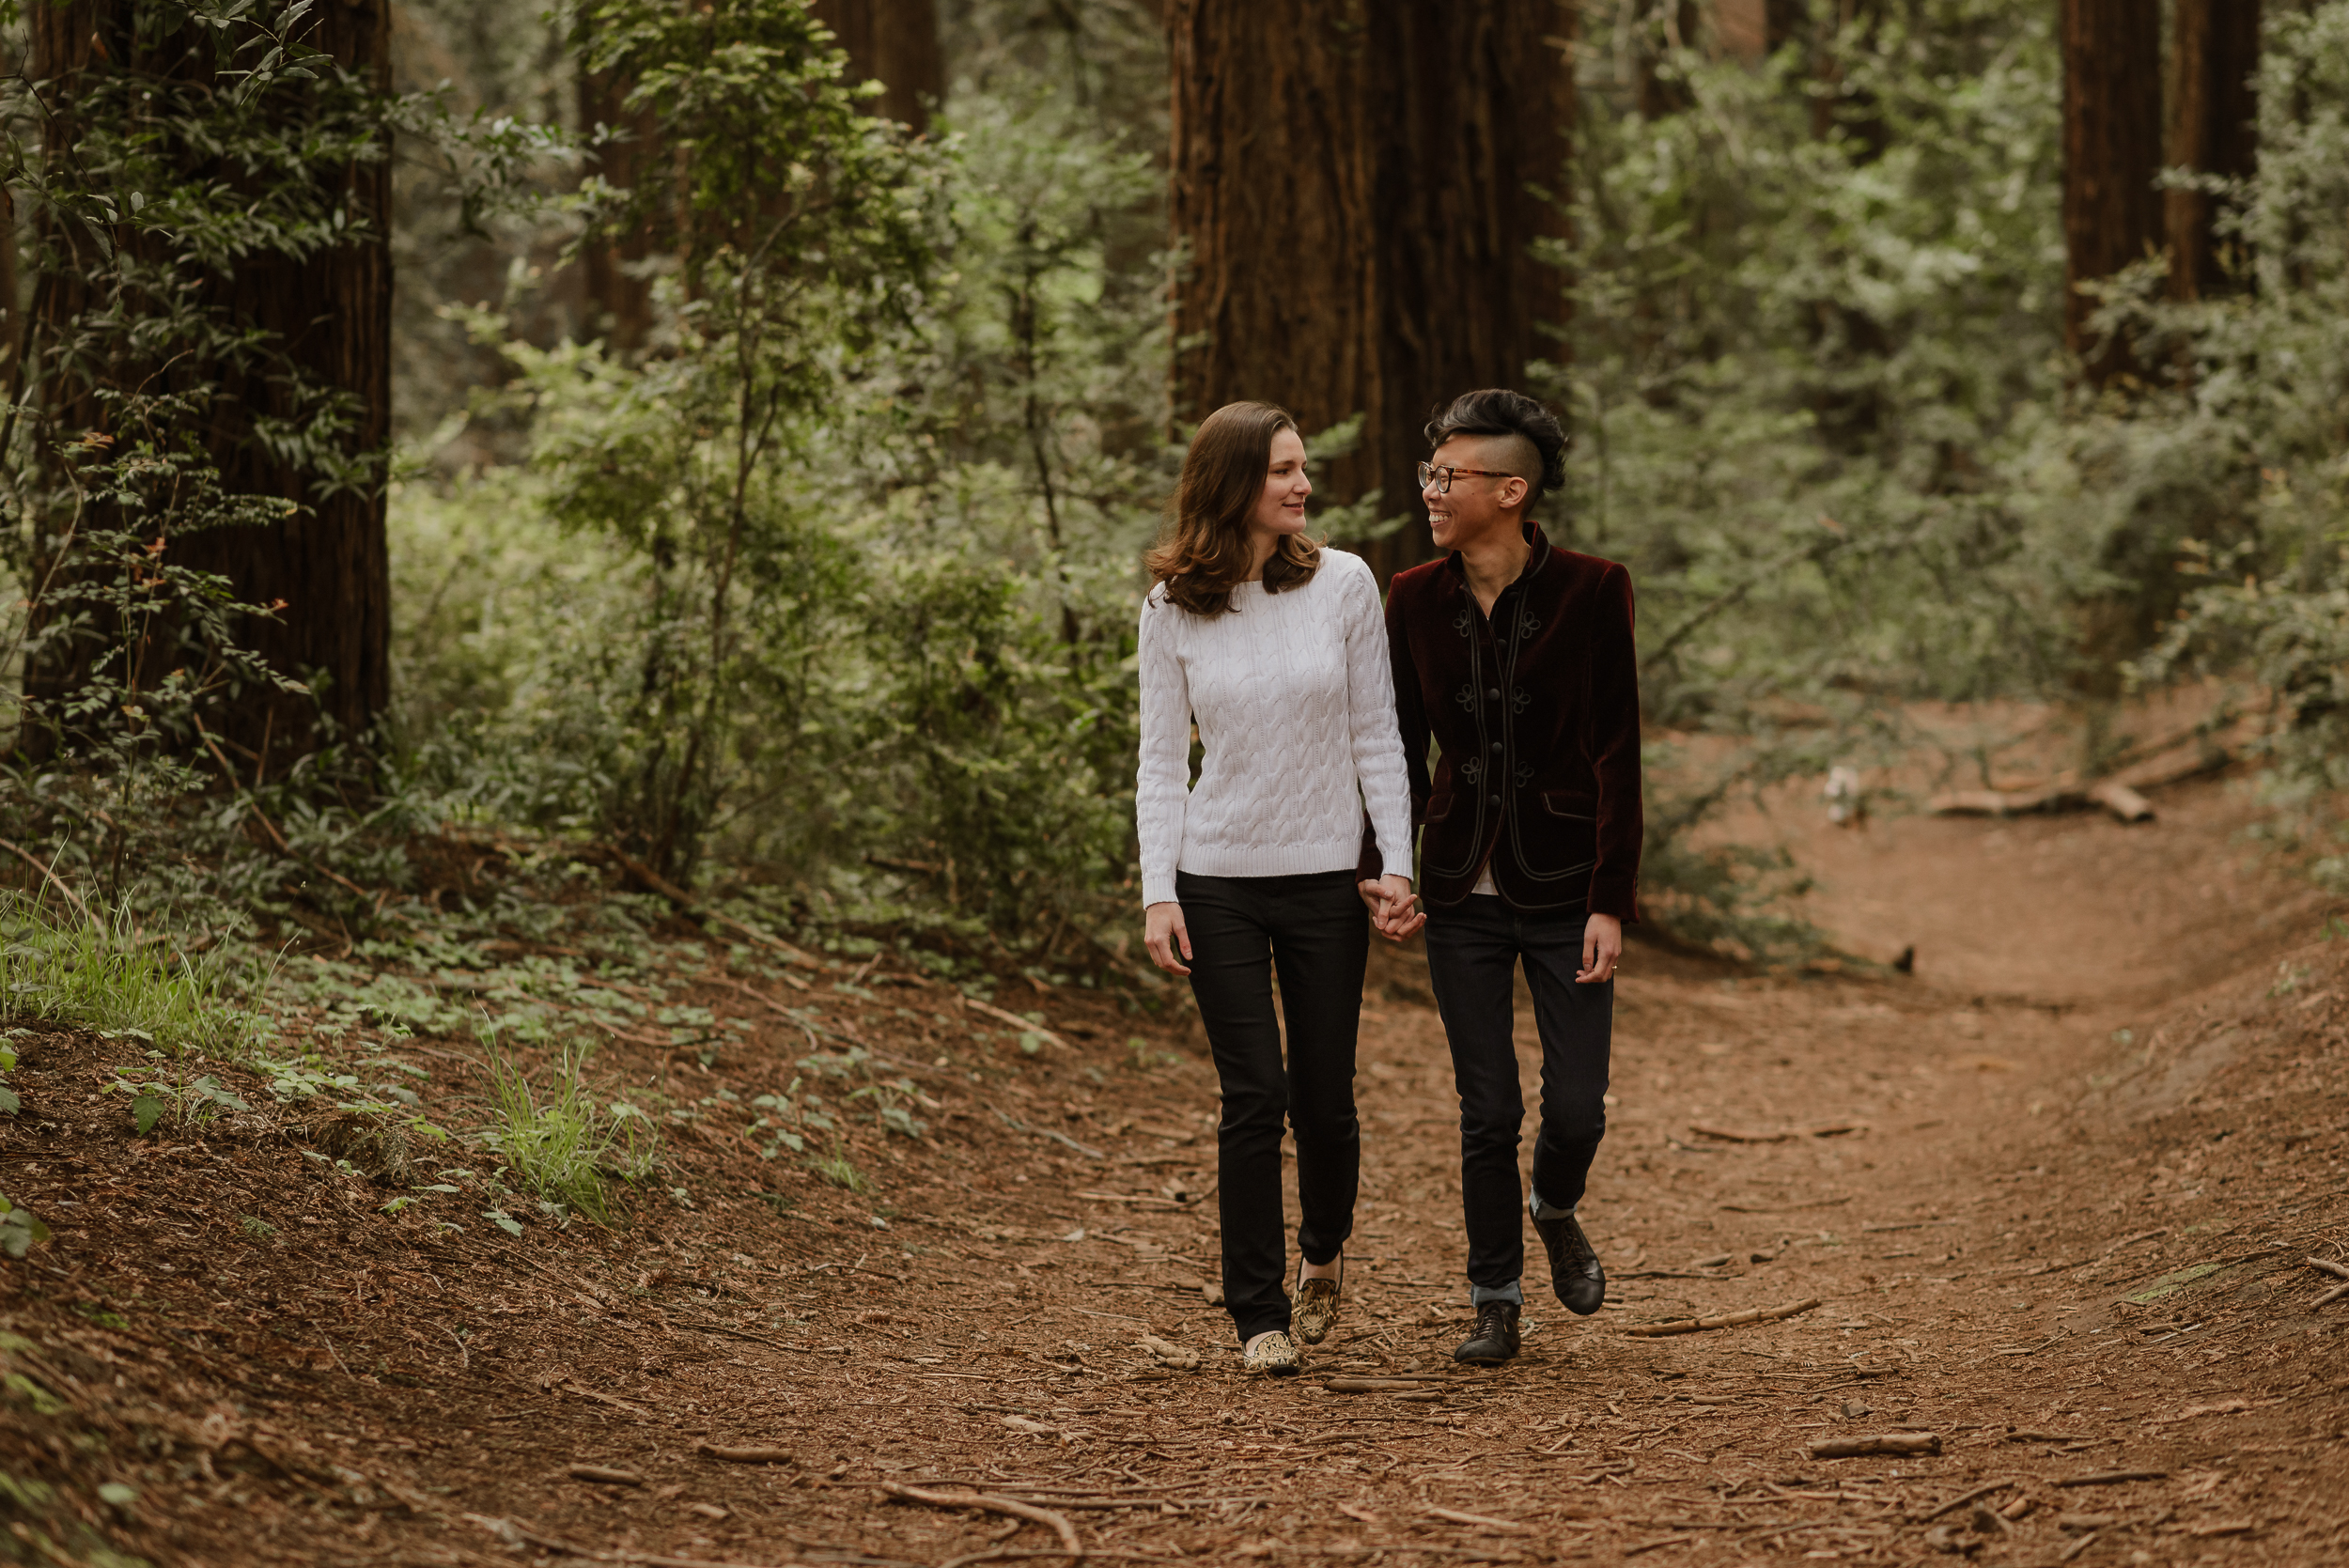 oakland-redwood-regional-park-engagement-session-vivianchen-069.jpg